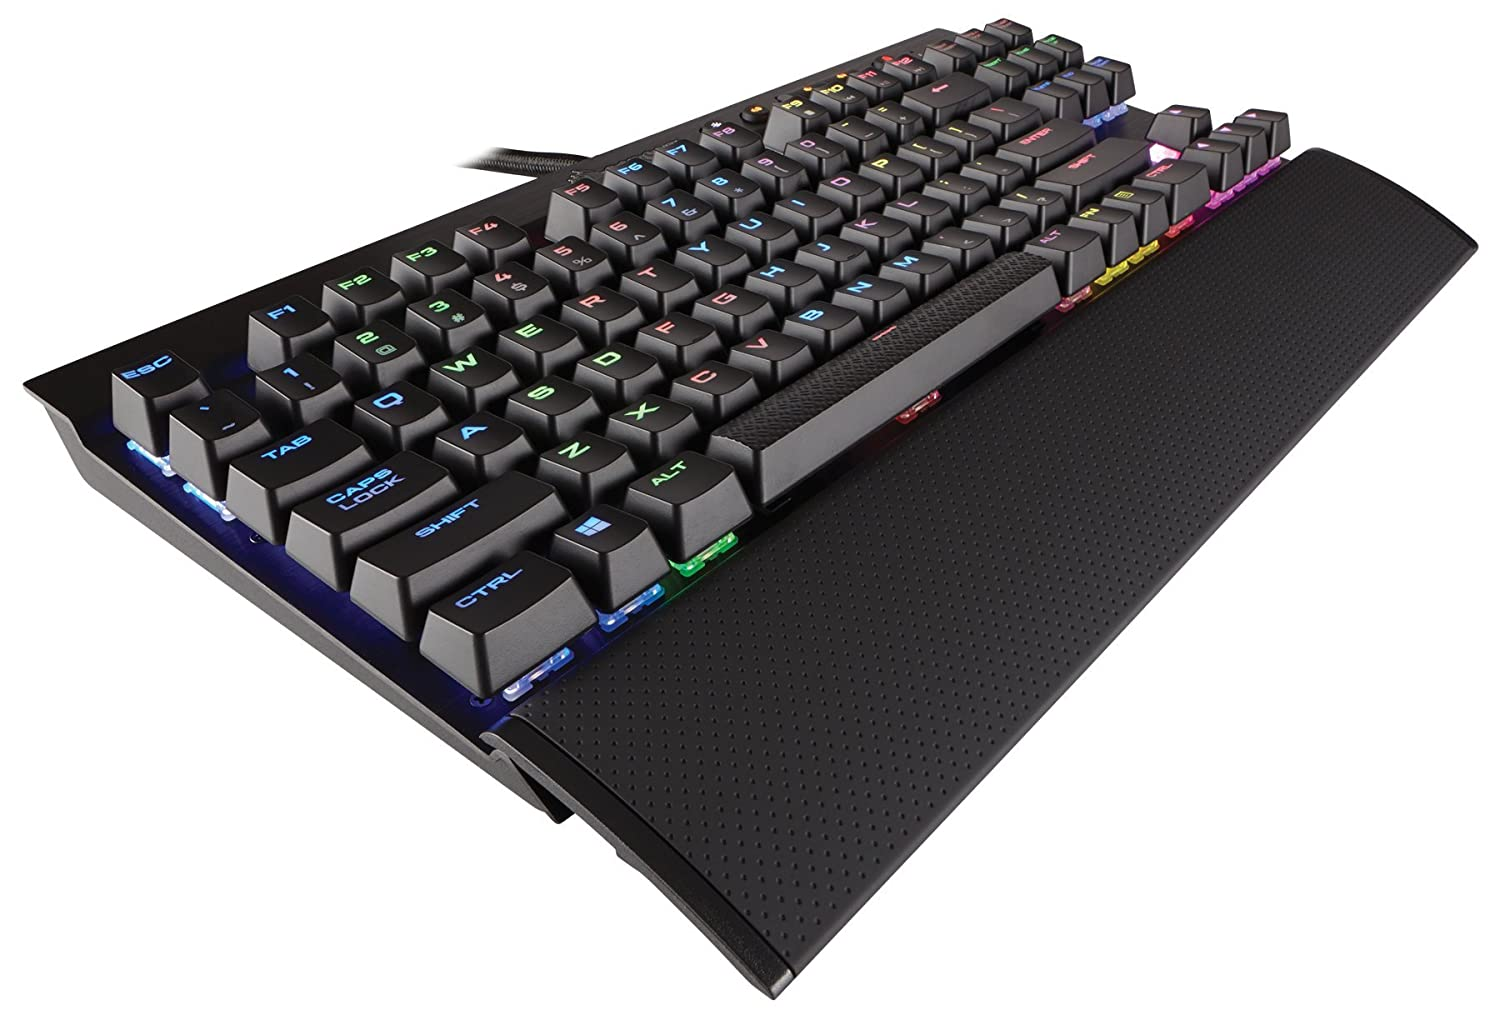 CORSAIR K65 LUX RGB Compact Mechanical Keyboard - Cherry MX